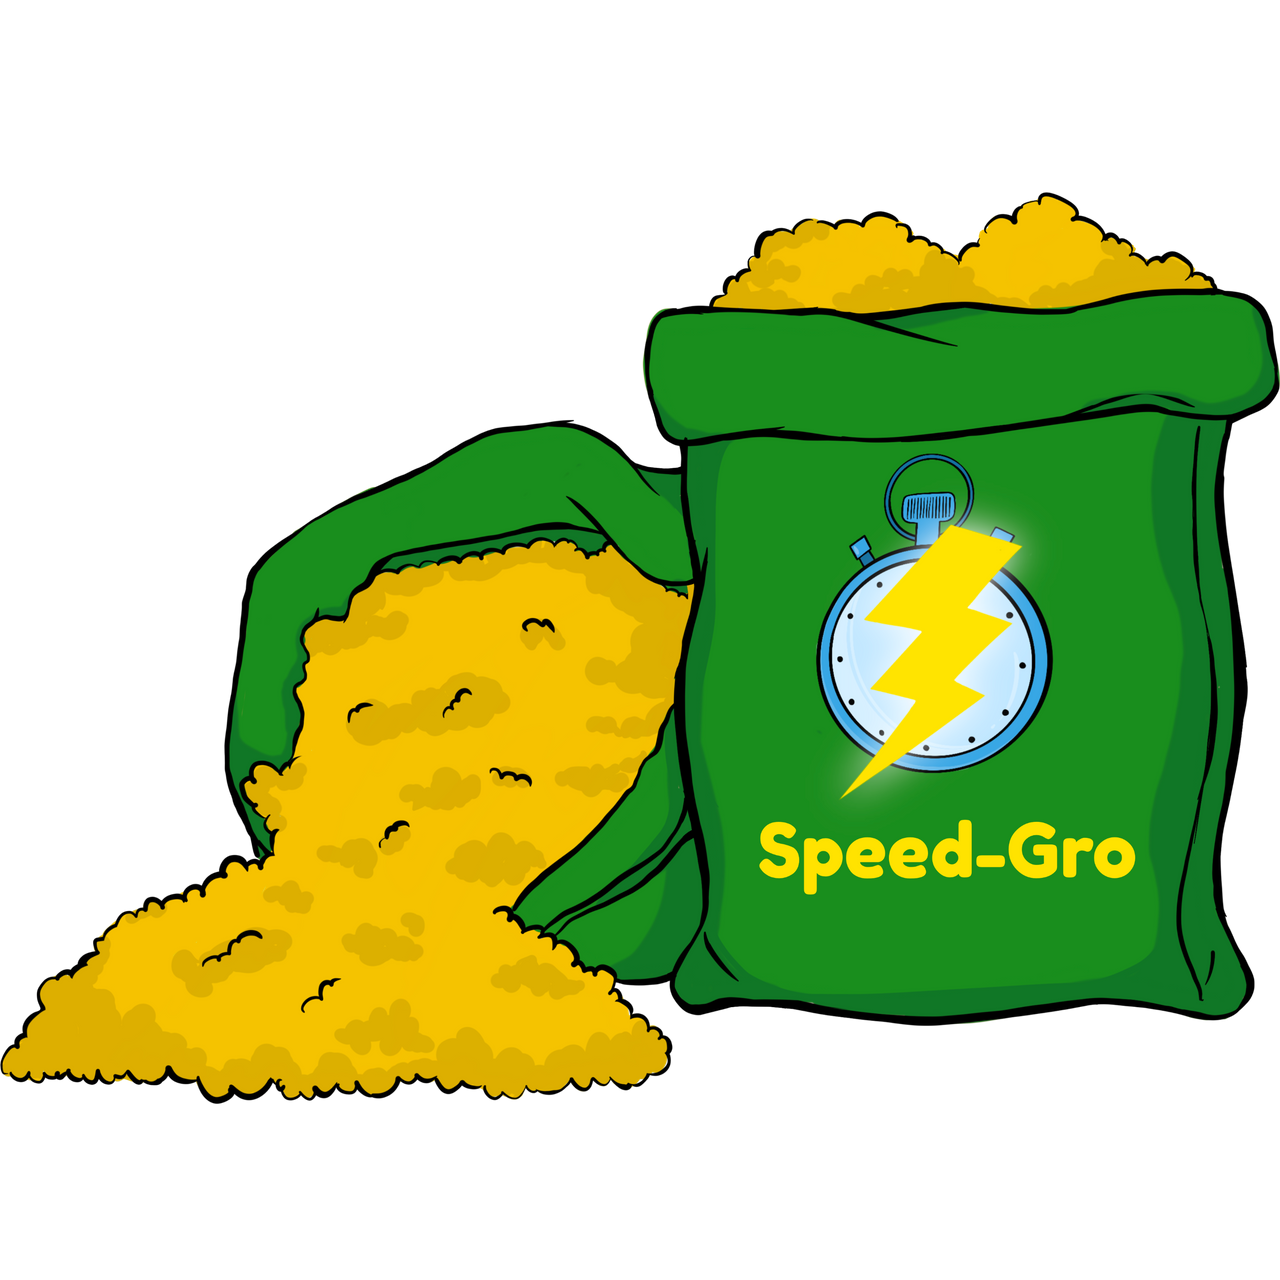 Speed_Gro 2.png